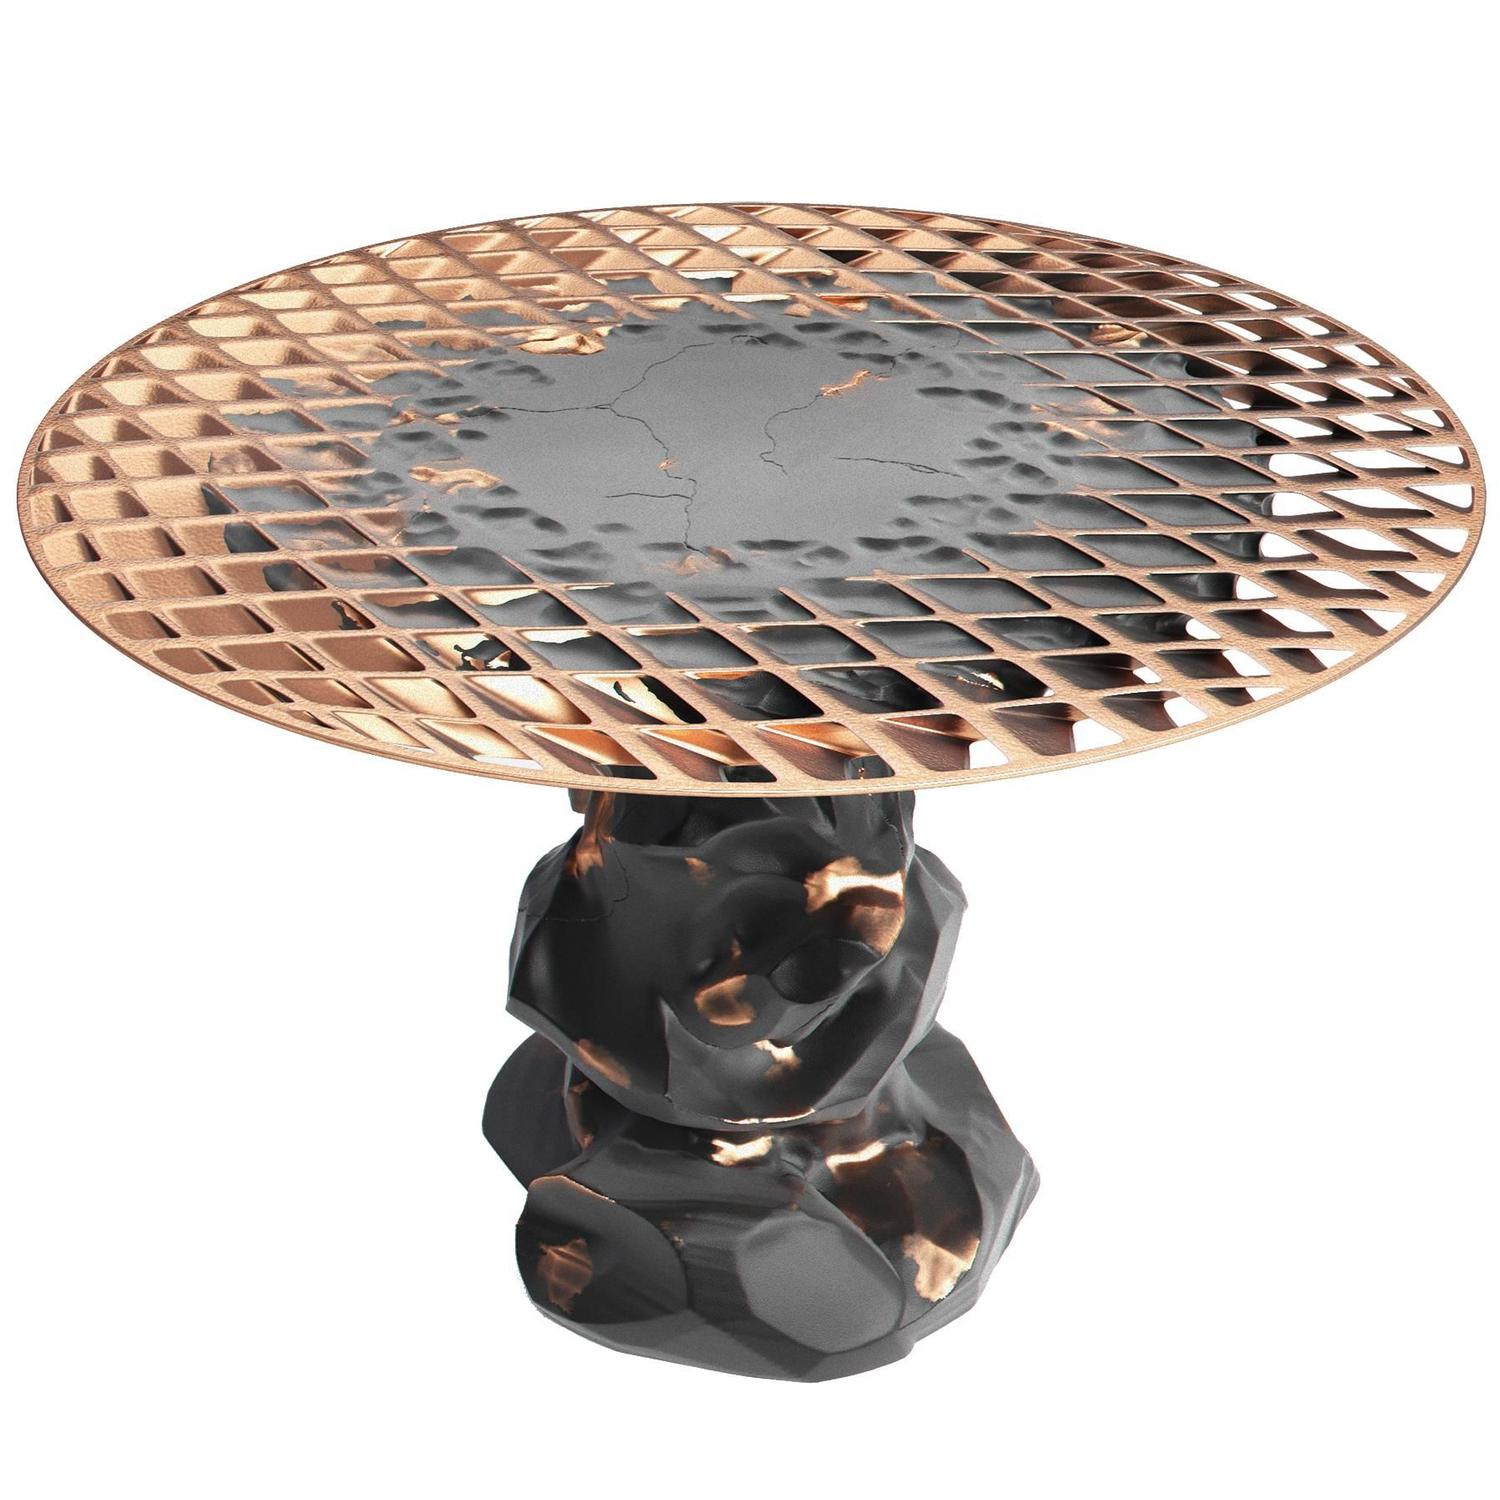 Metsidian Round Side Table End In Obsidian And Copper Finish On Top